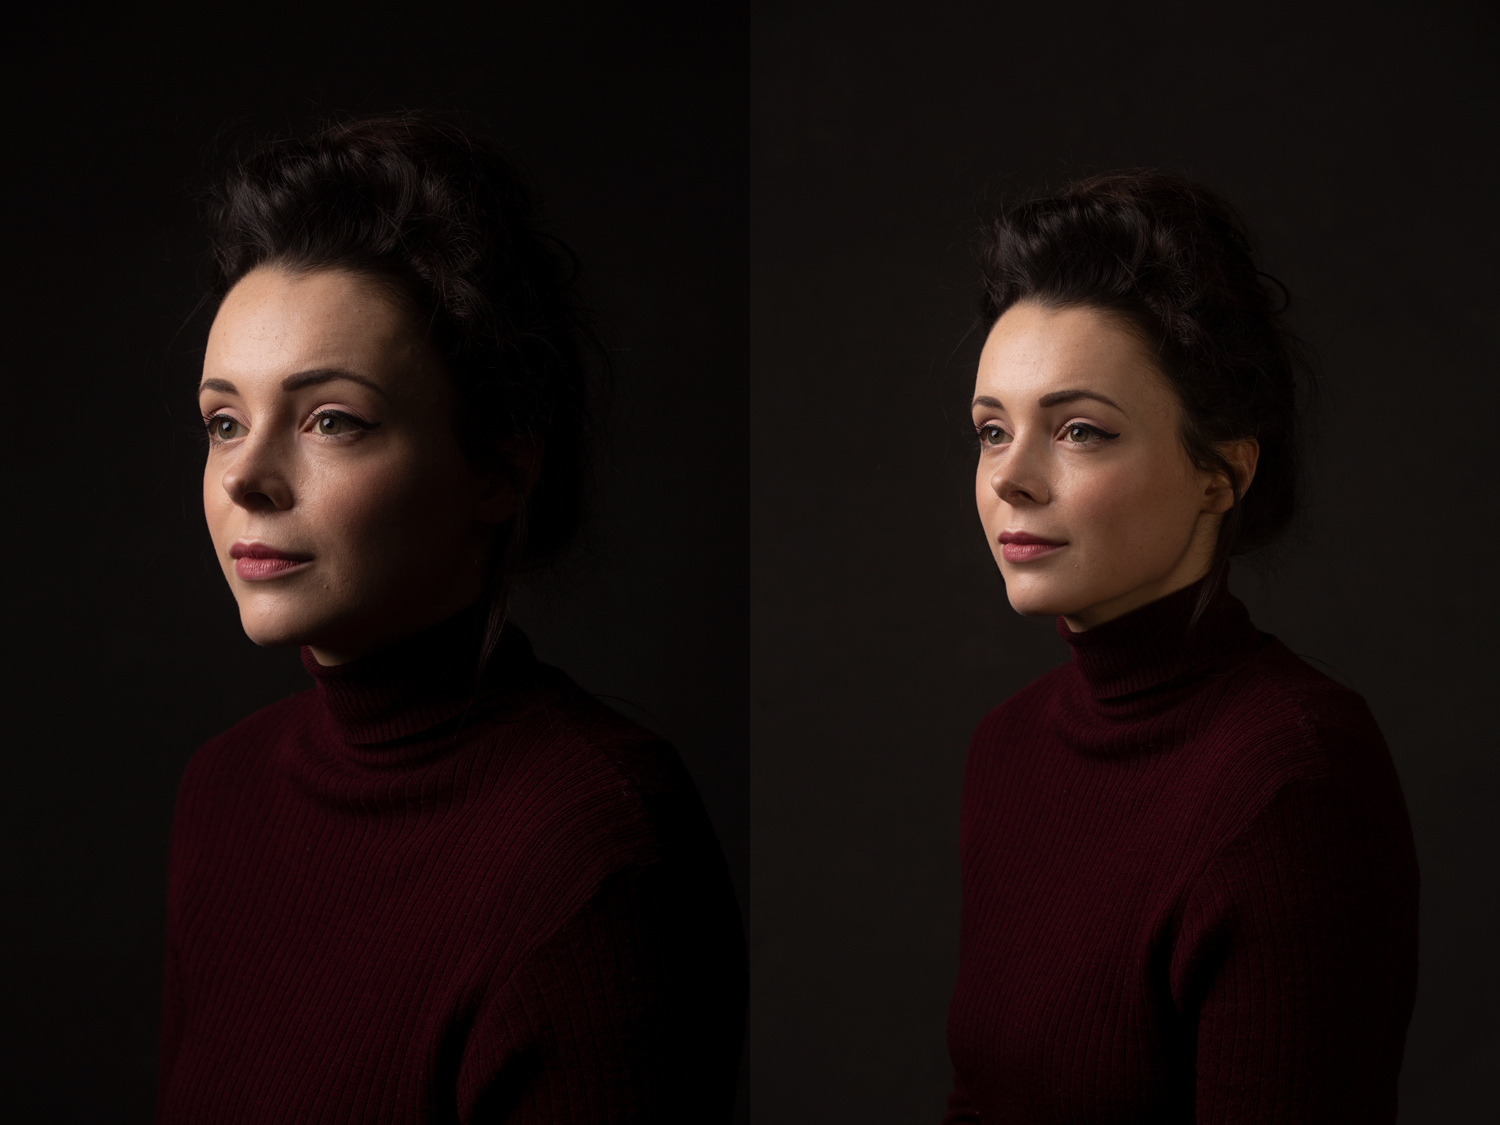 headshot with and without fill light